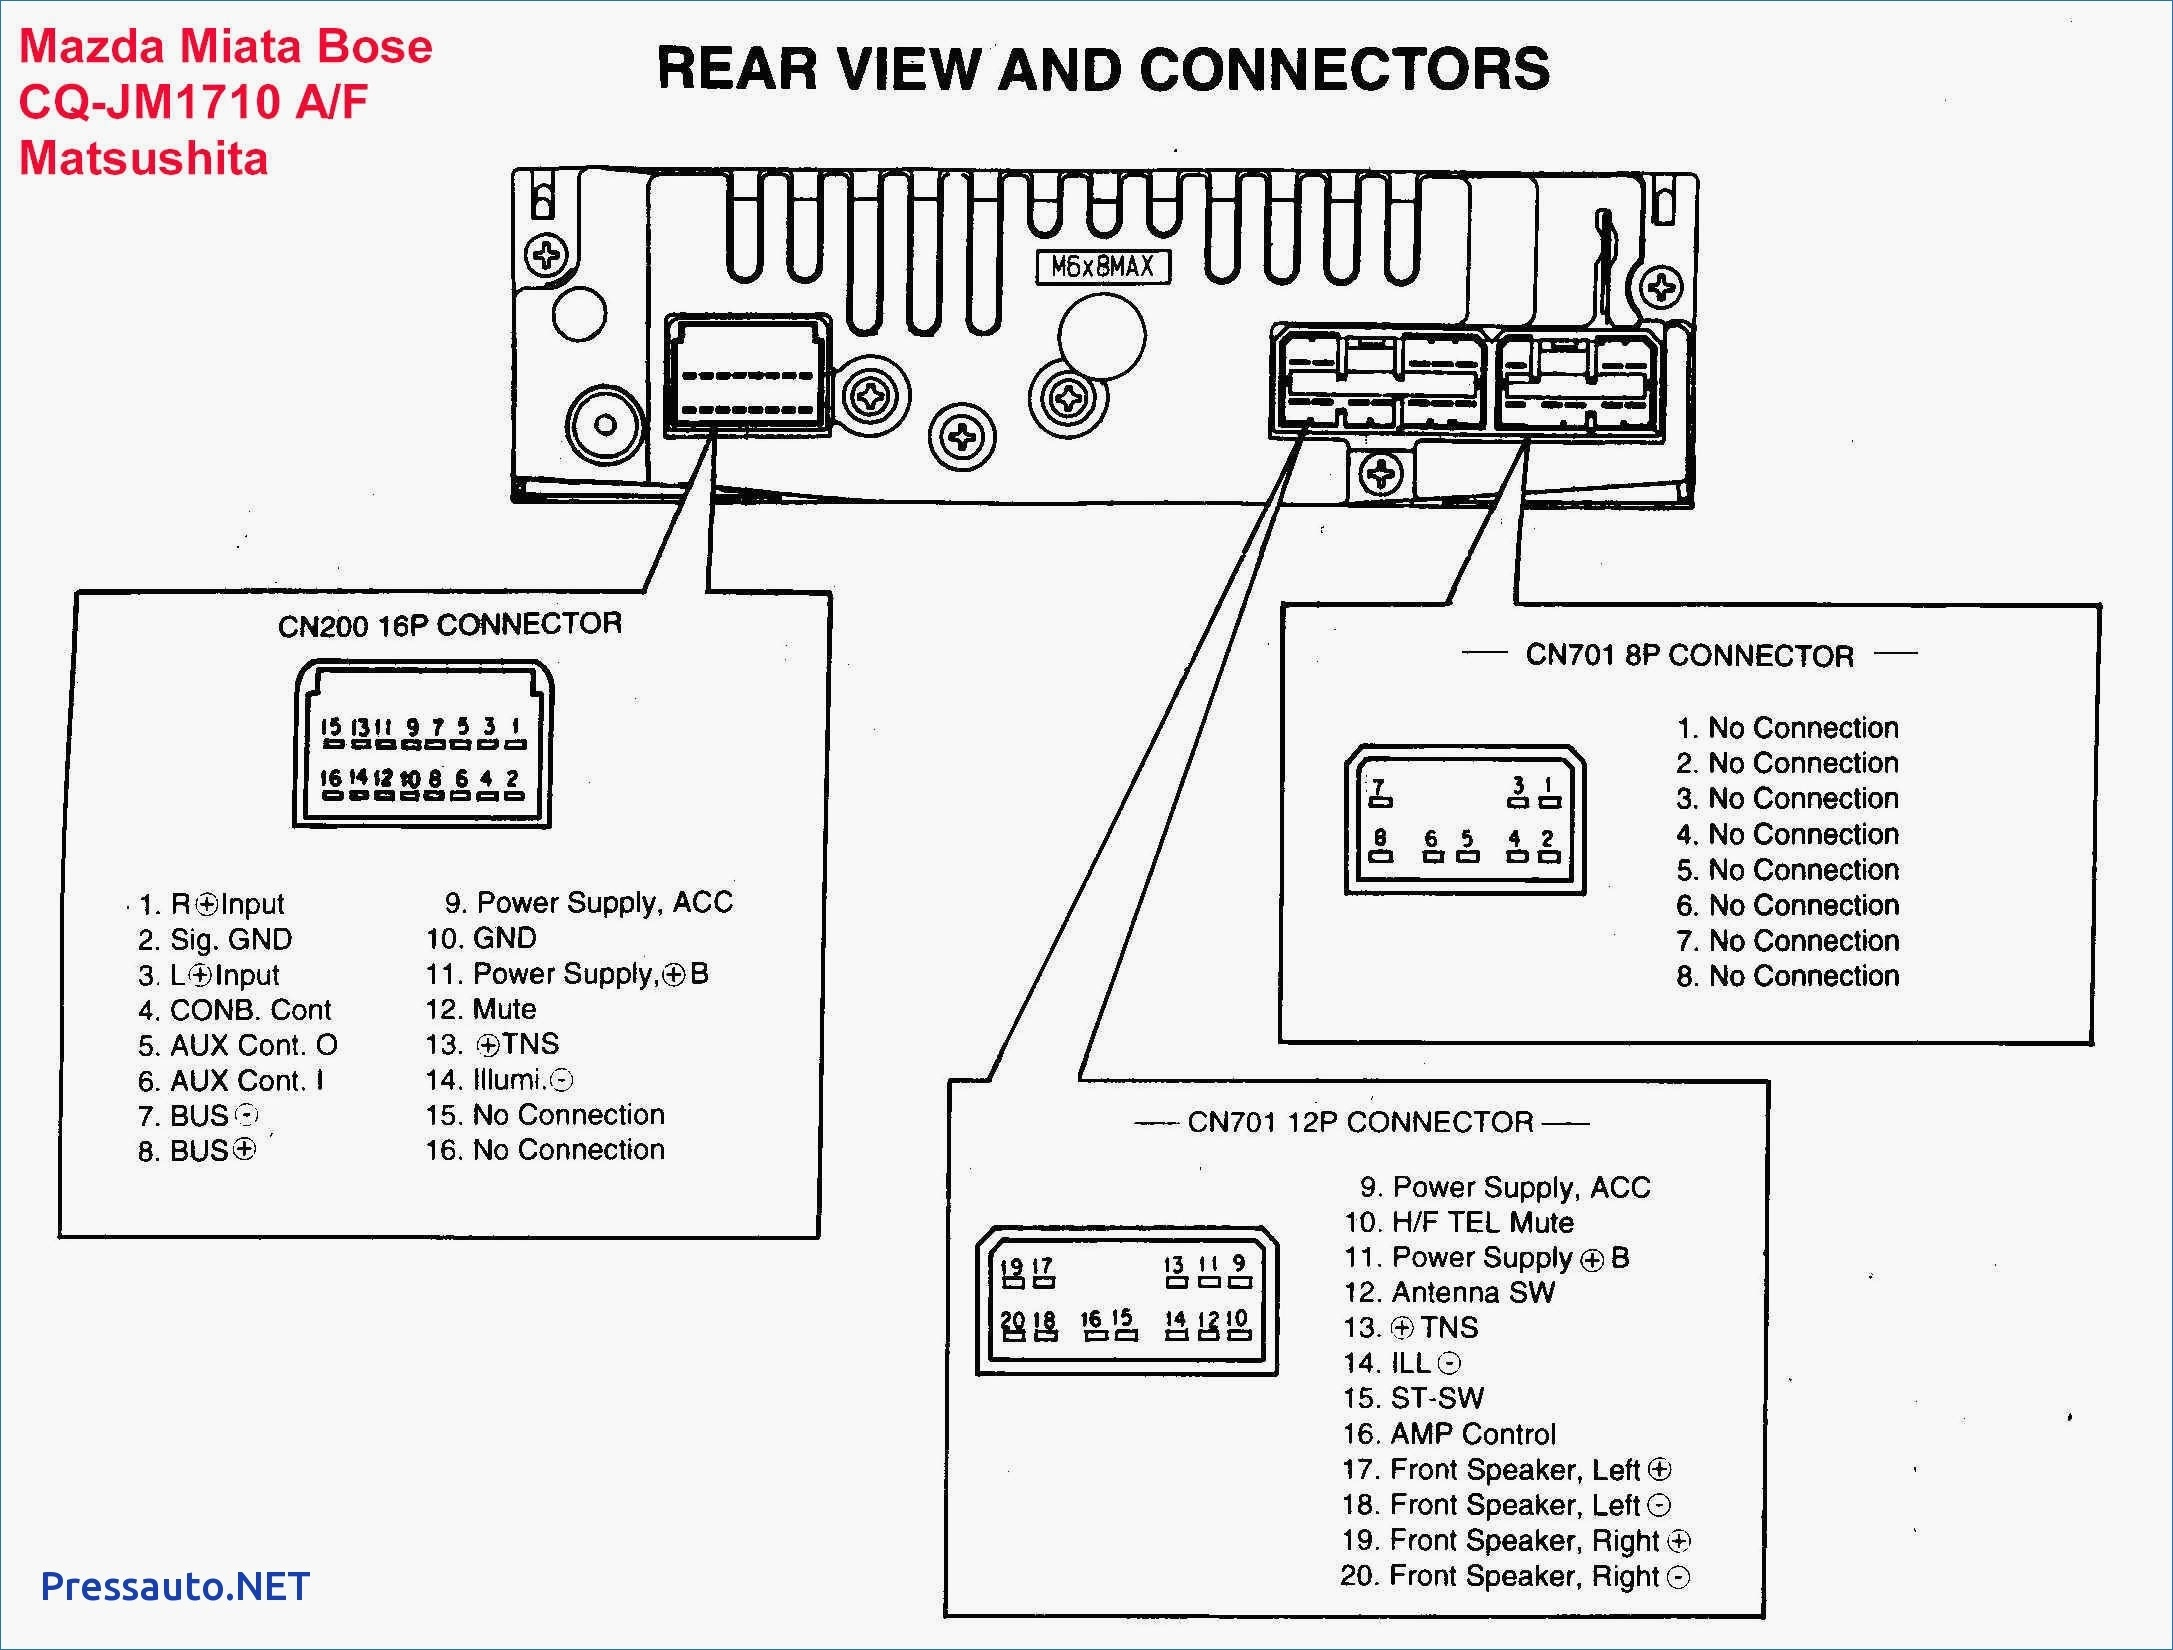 2009 rogue fuse box wiring diagram tutorial 2012 Nissan Versa Wiring Diagram nissan rogue fuse panel diagram ngs wiring diagram2012 nissan rogue fuse box wiring diagram 2009 nissan